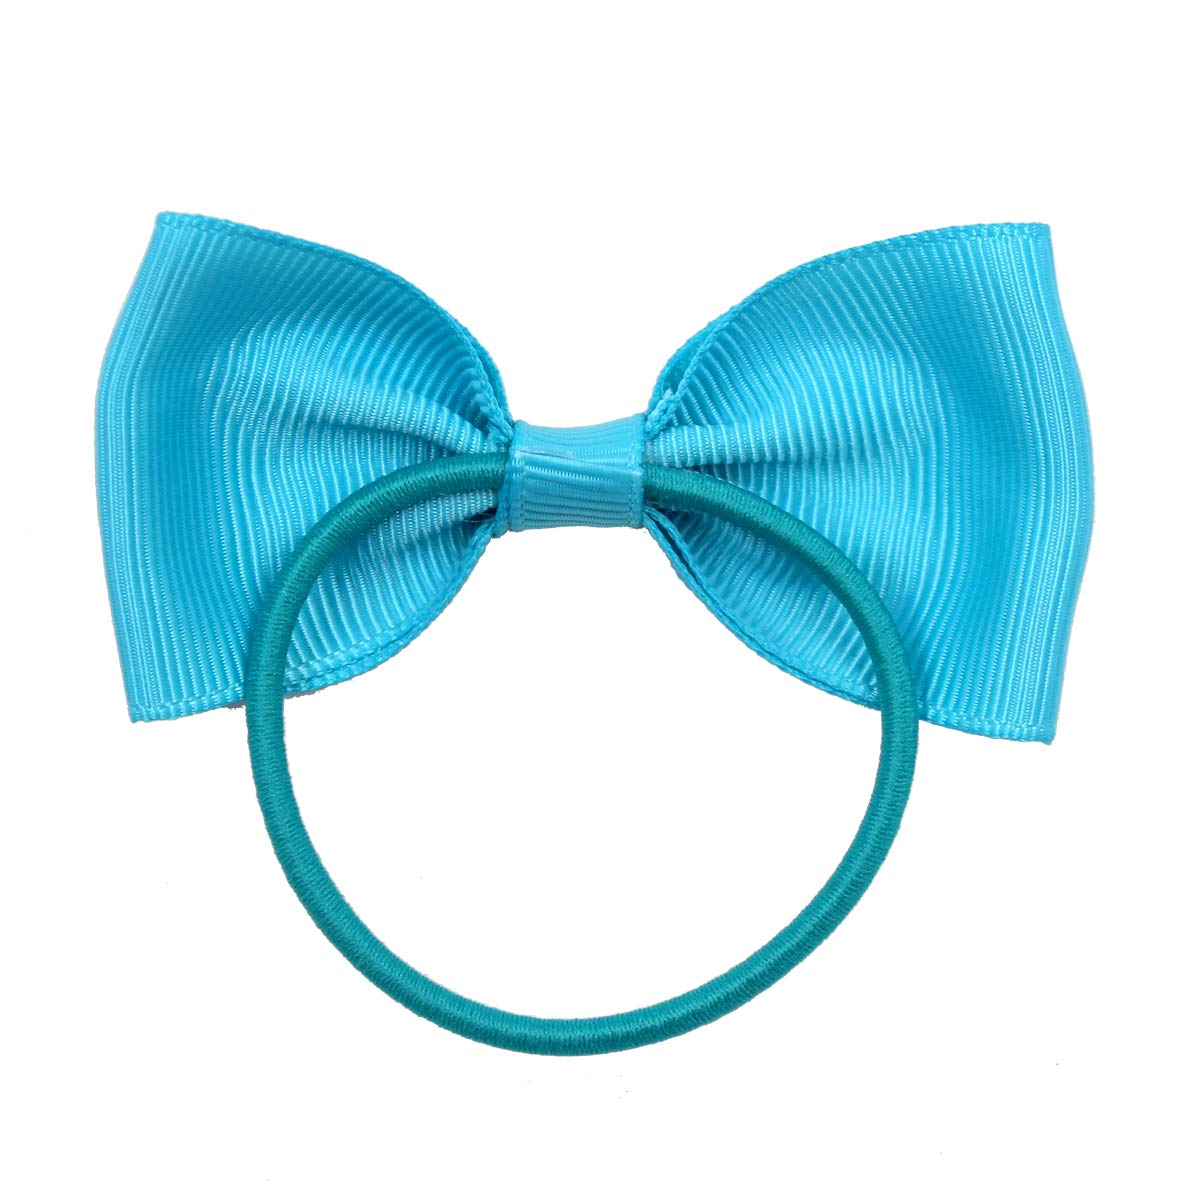 GIRLS HANDMADE BOUTIQUE HAIR BOW BOBBLES IN AQUA BLUE RIBBON SOLD IN PAIRS